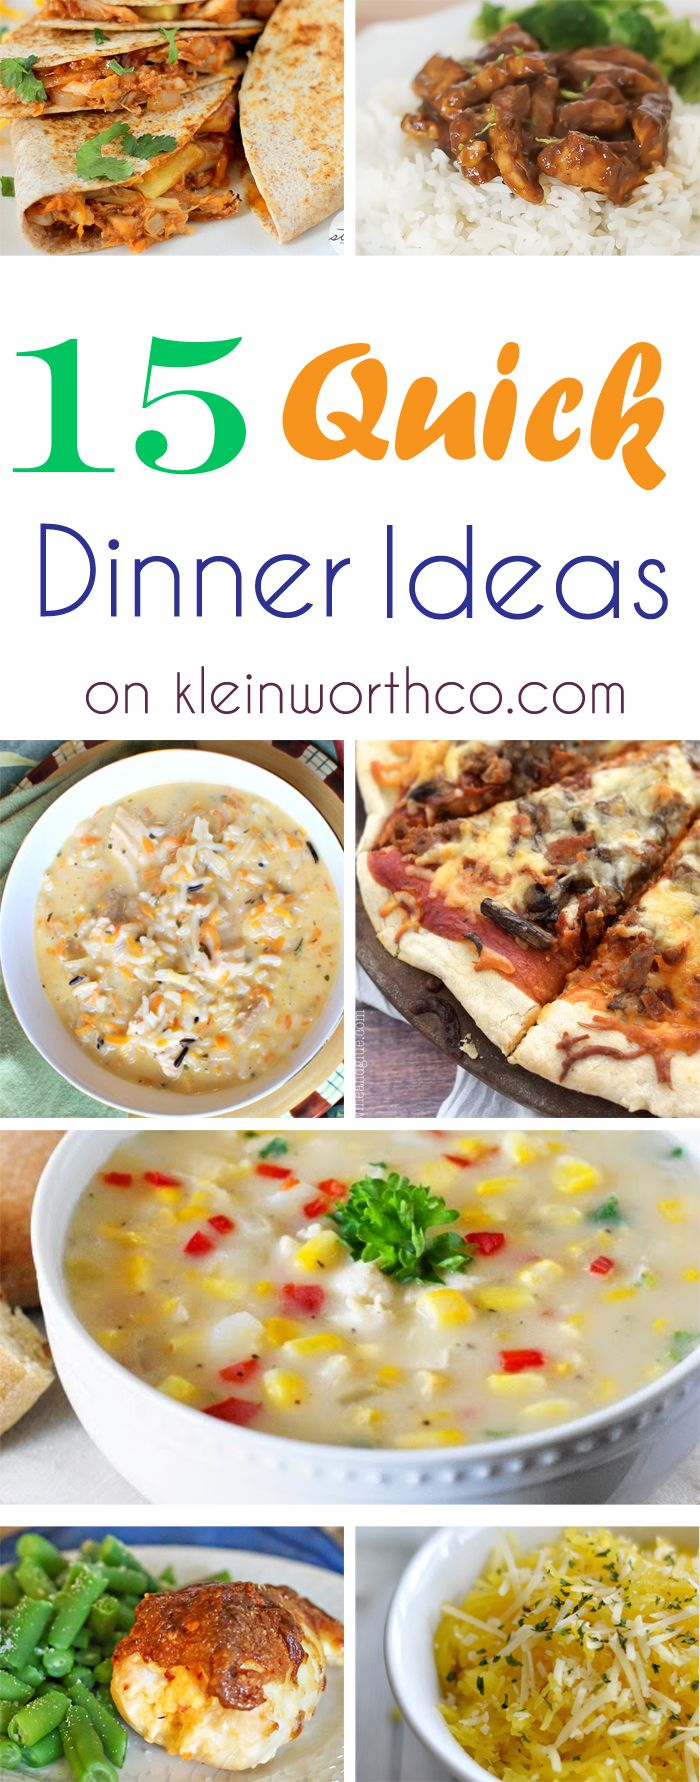 dinner ideas easy family dinner ideas family dinner ideas easy family